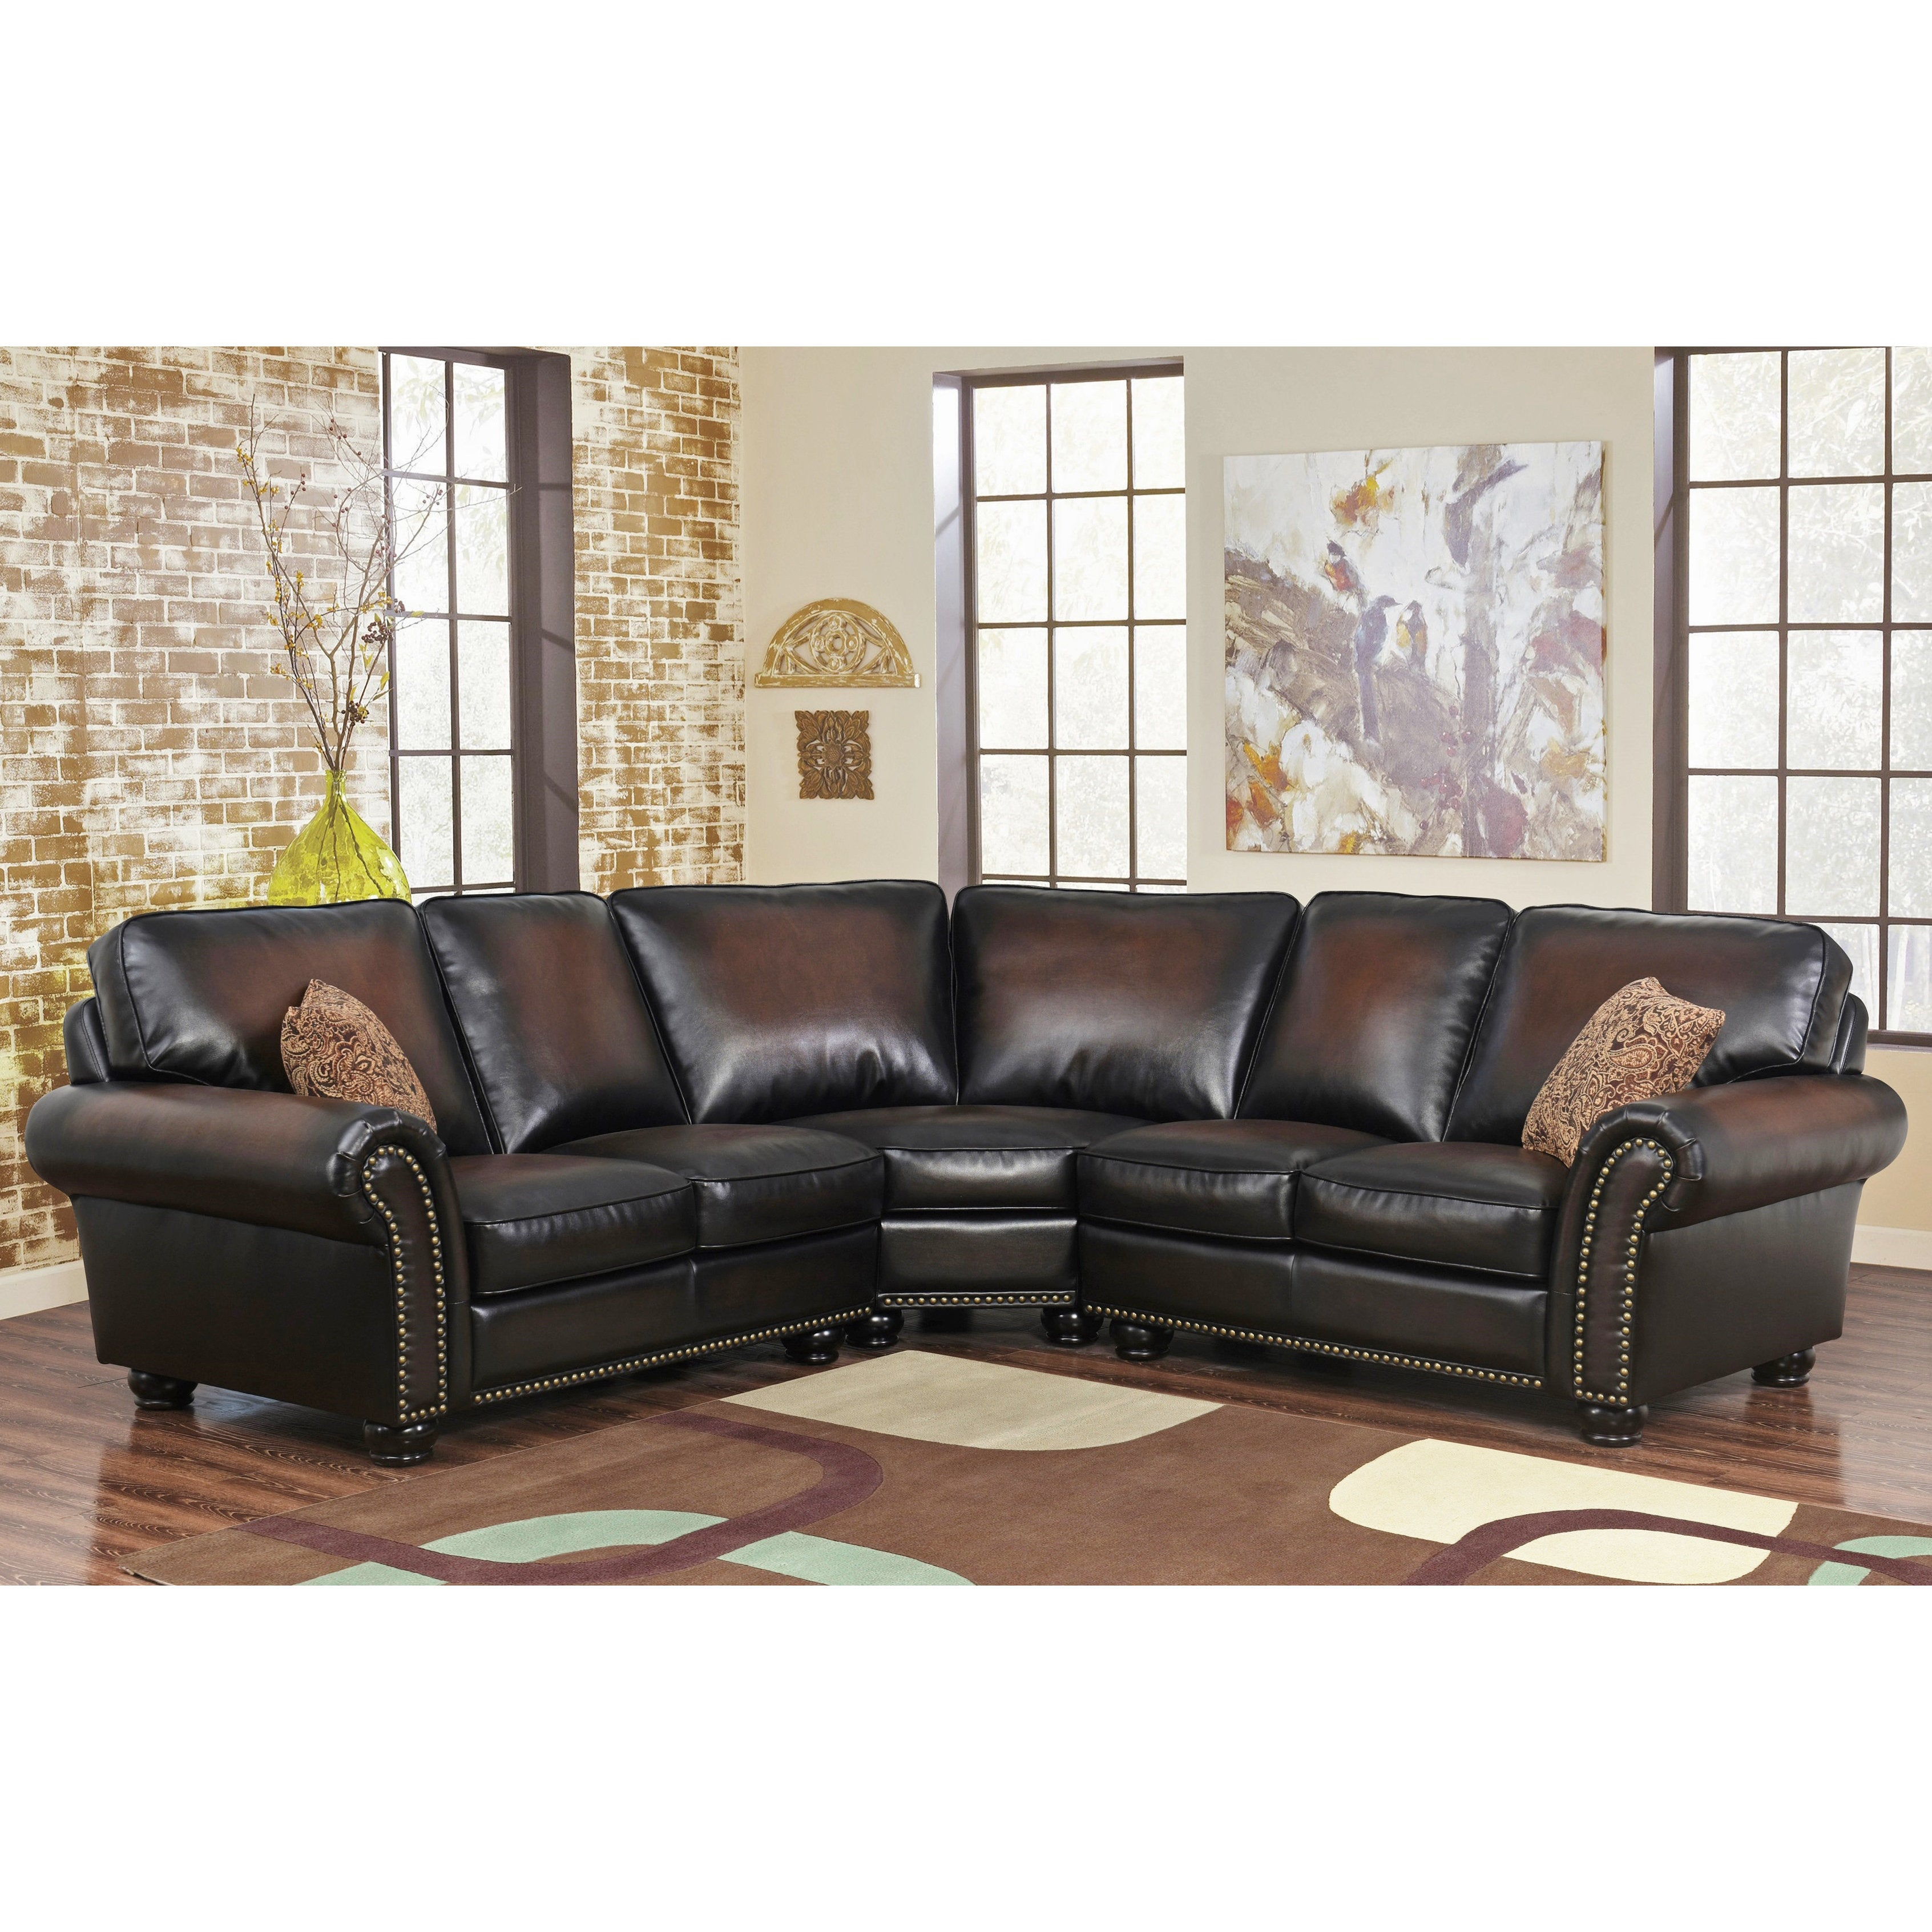 Ordinaire Abbyson Melrose Bonded Leather 3 Piece Sectional